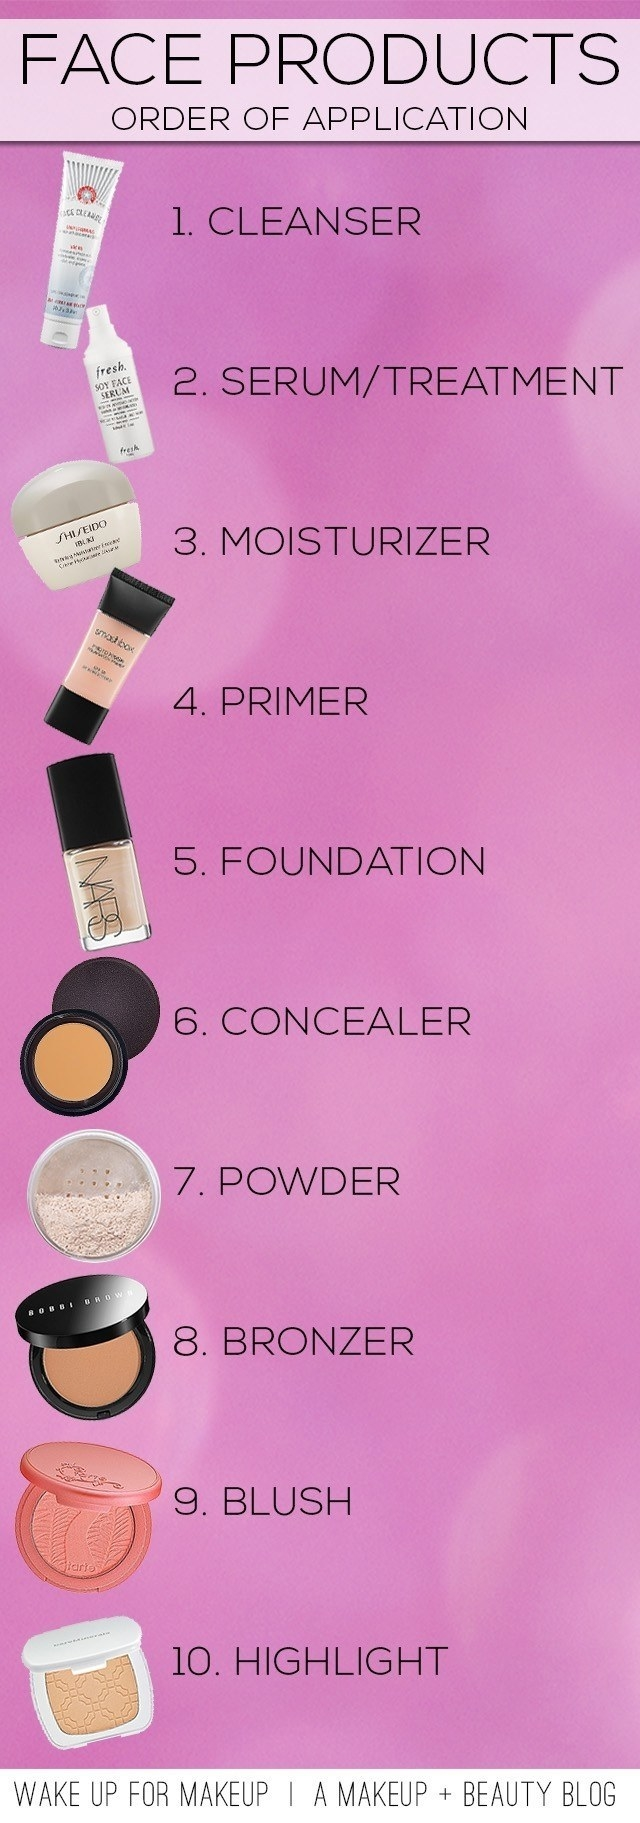 Order of application 1. cleanser 2. serum/treatment 3. moisturizer 4. primer 5. foundation 6. concealer 7. powder 8. bronzer 9. blush 10. highlight